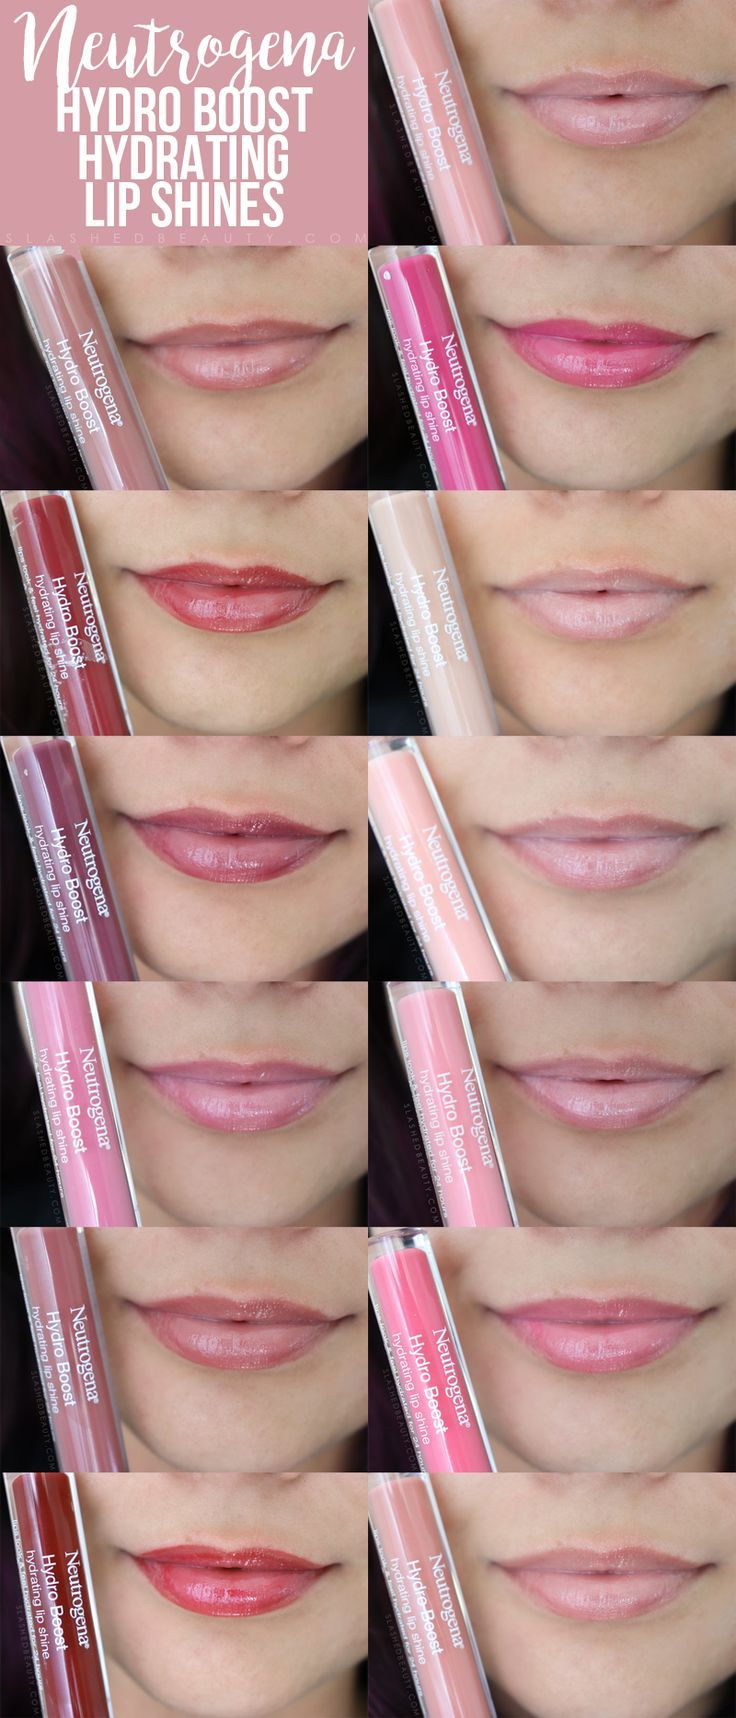 Best Lip Color for Dry Lips Neutrogena Hydro Boost